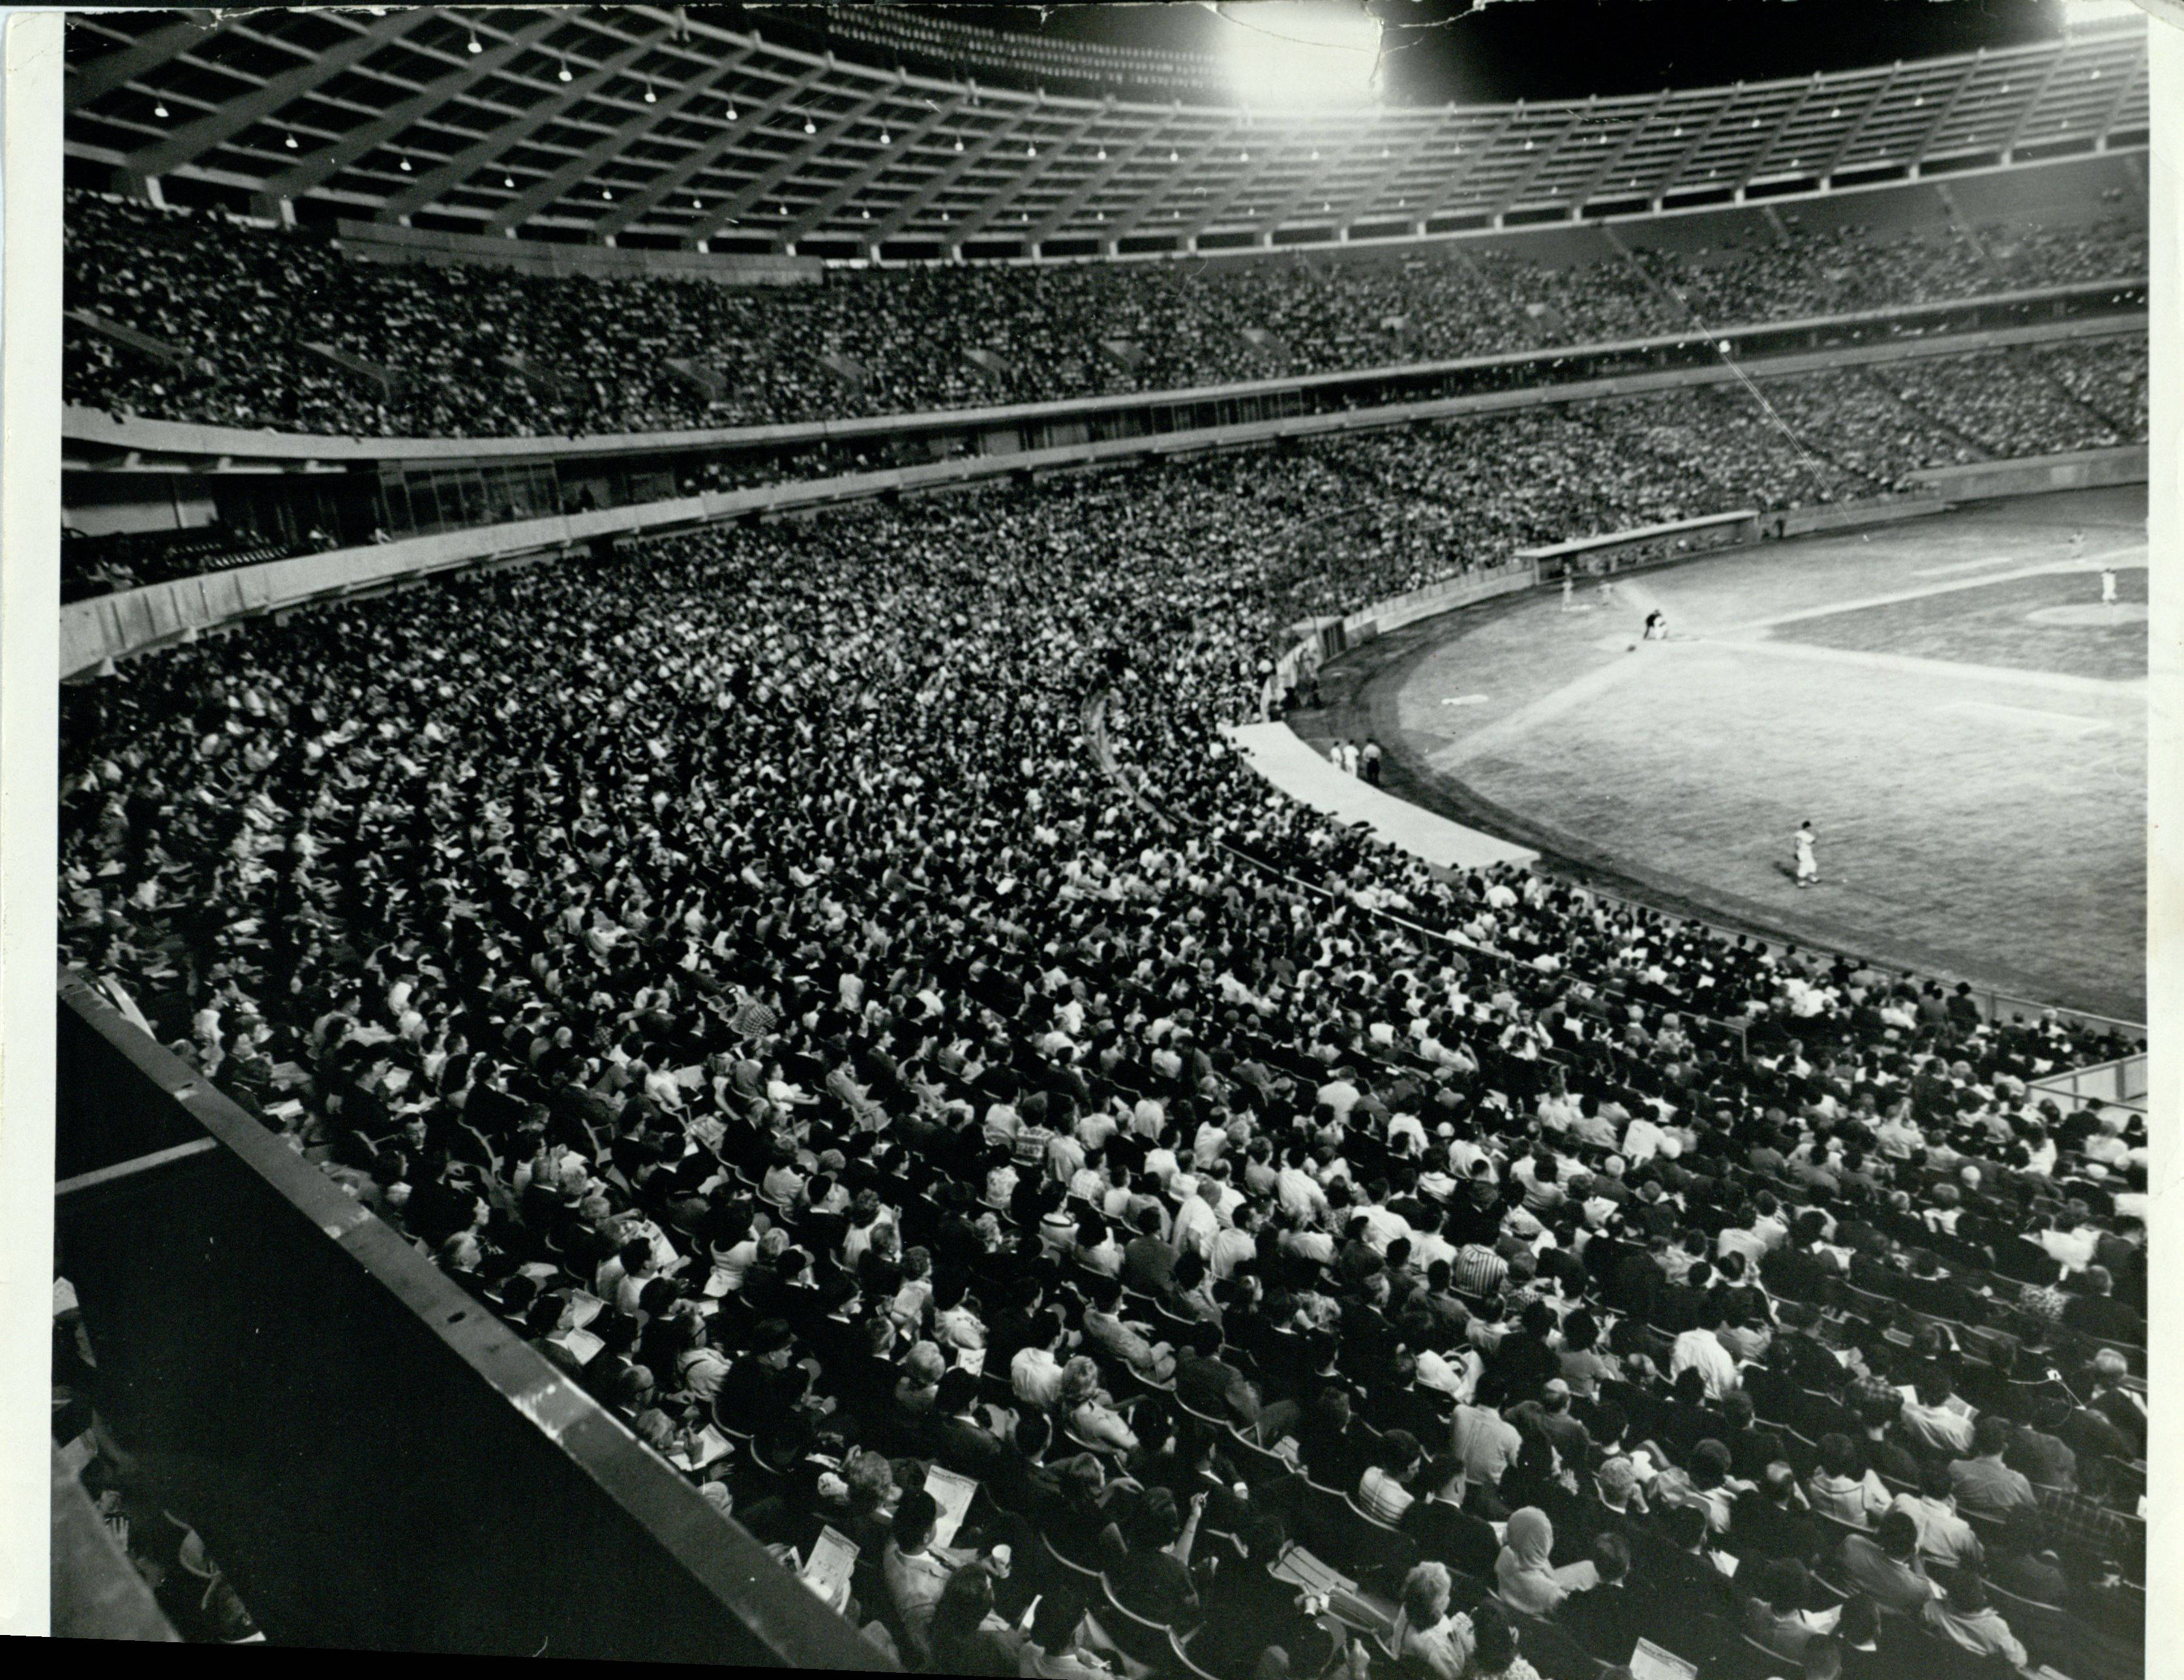 Sold Out Crowd at Atlanta Fulton County Stadium